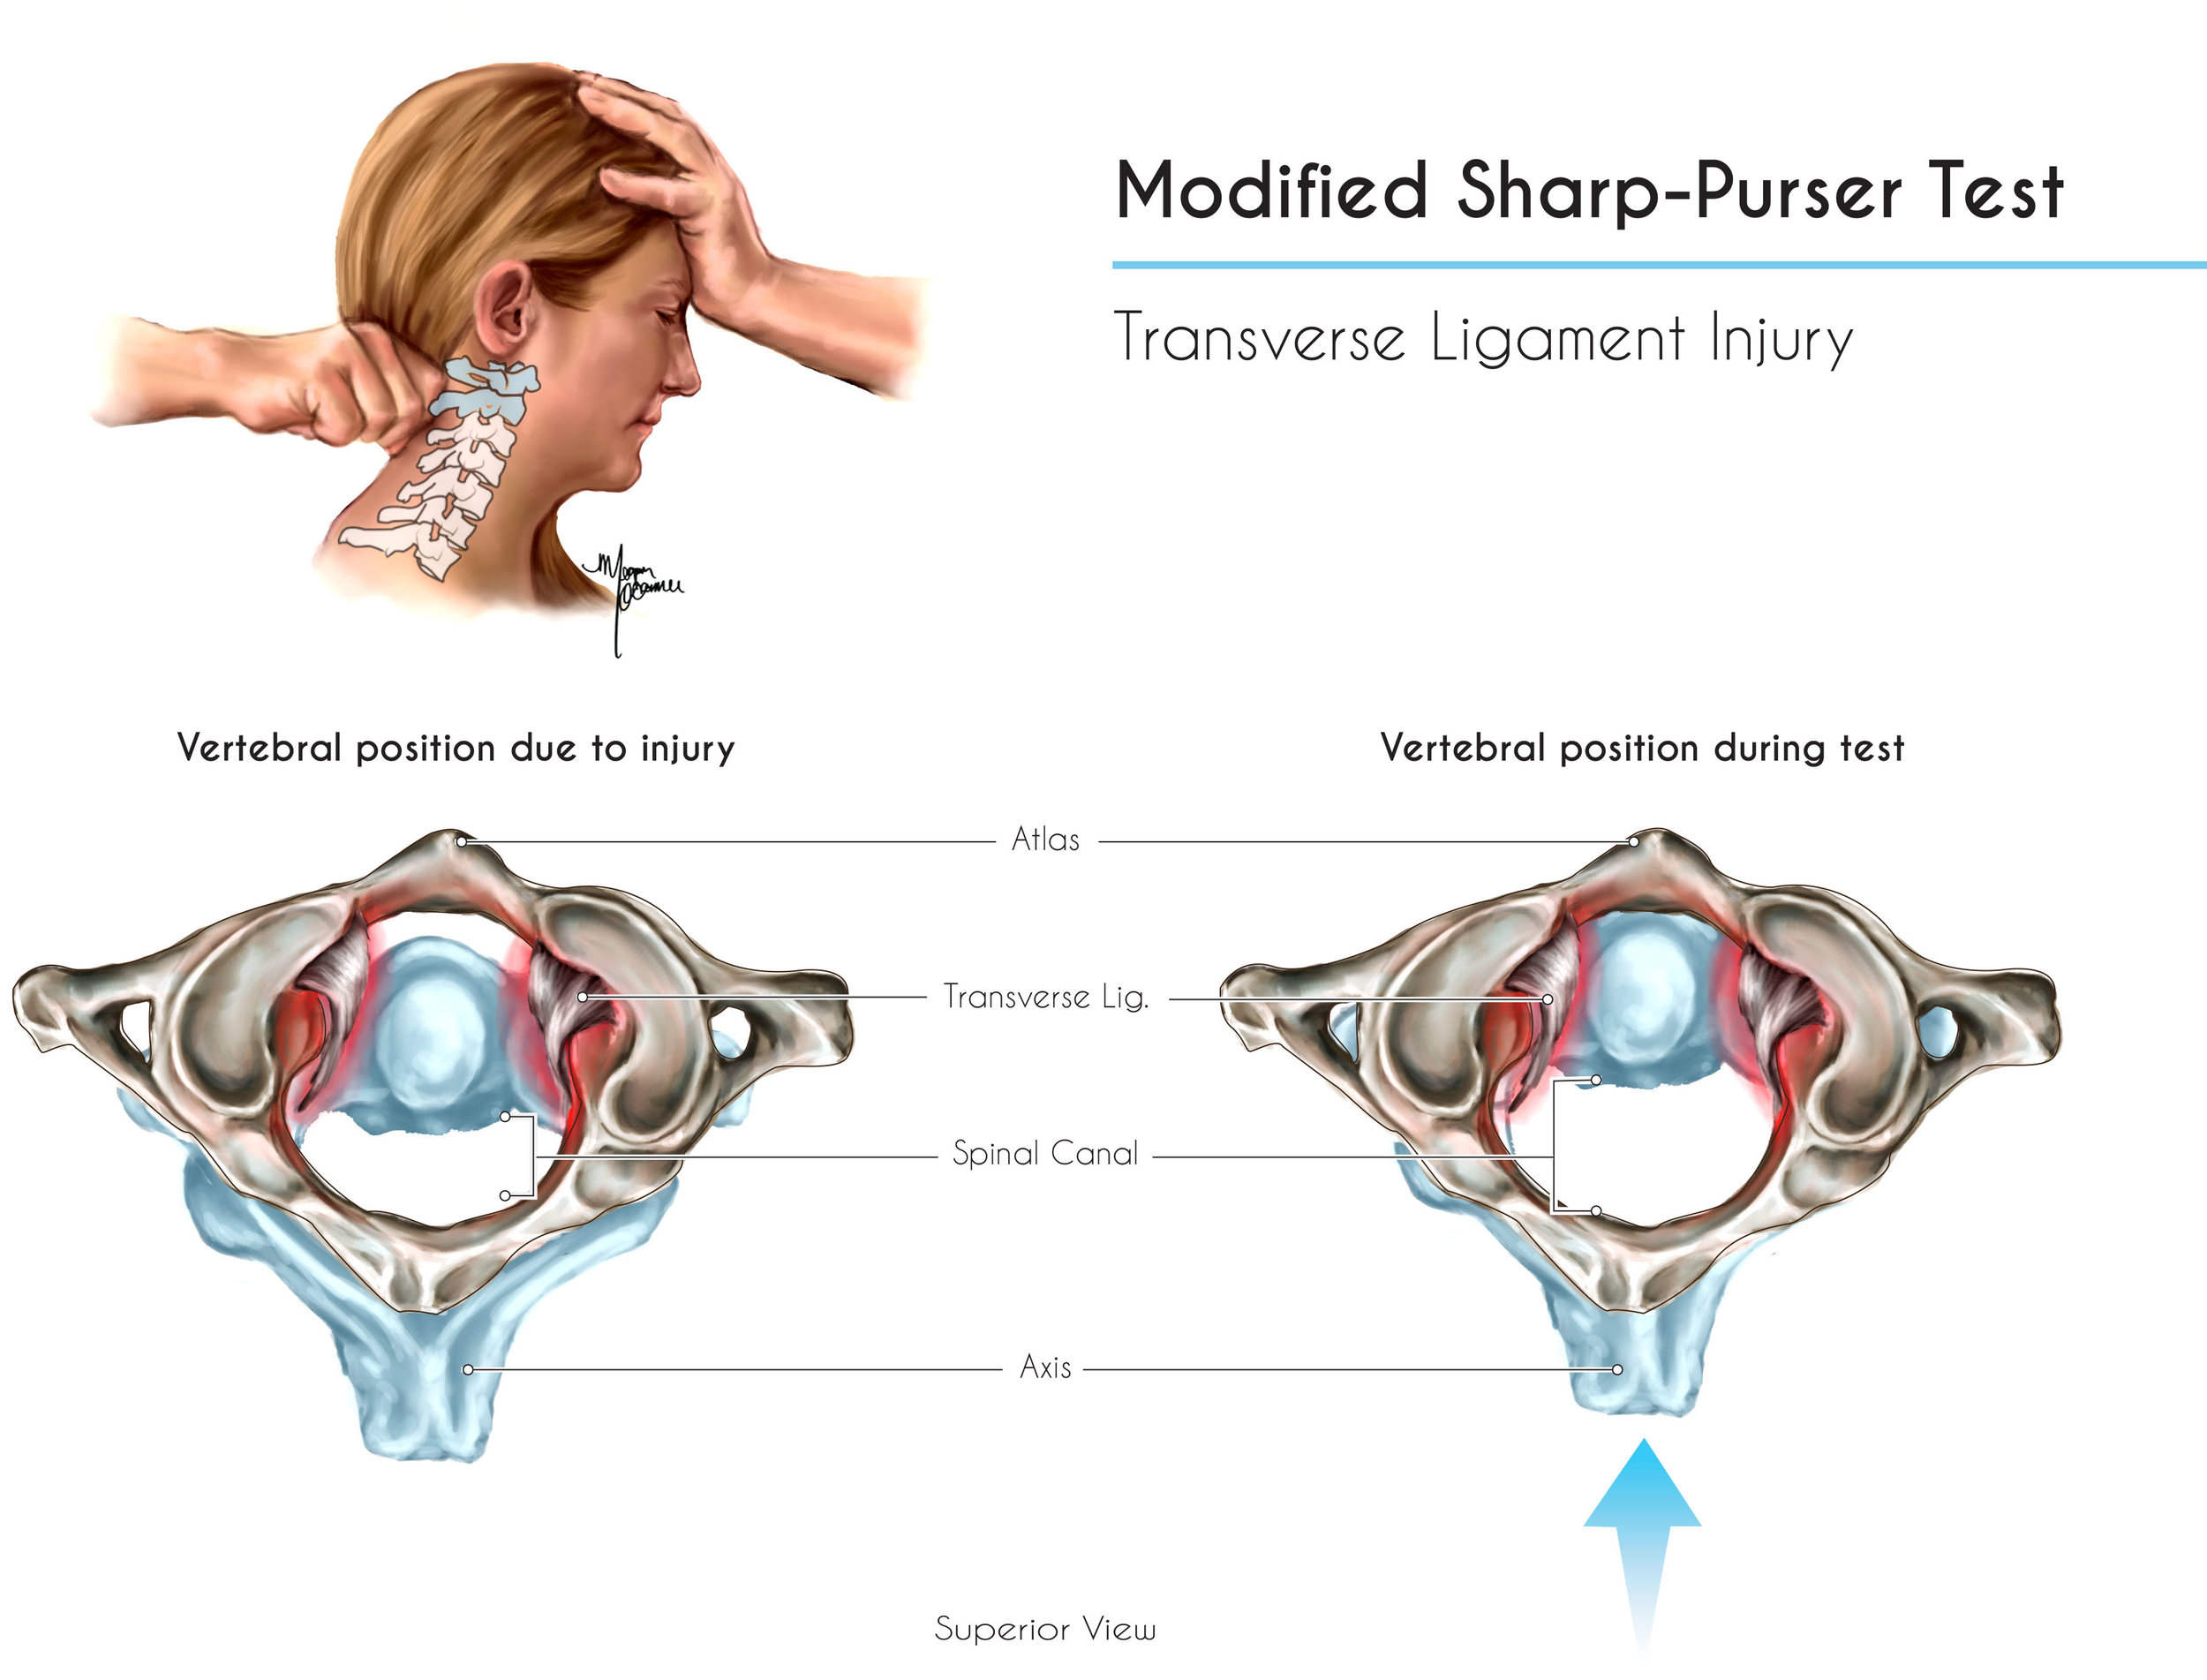 Modified Sharp-Purser Test - Learn More